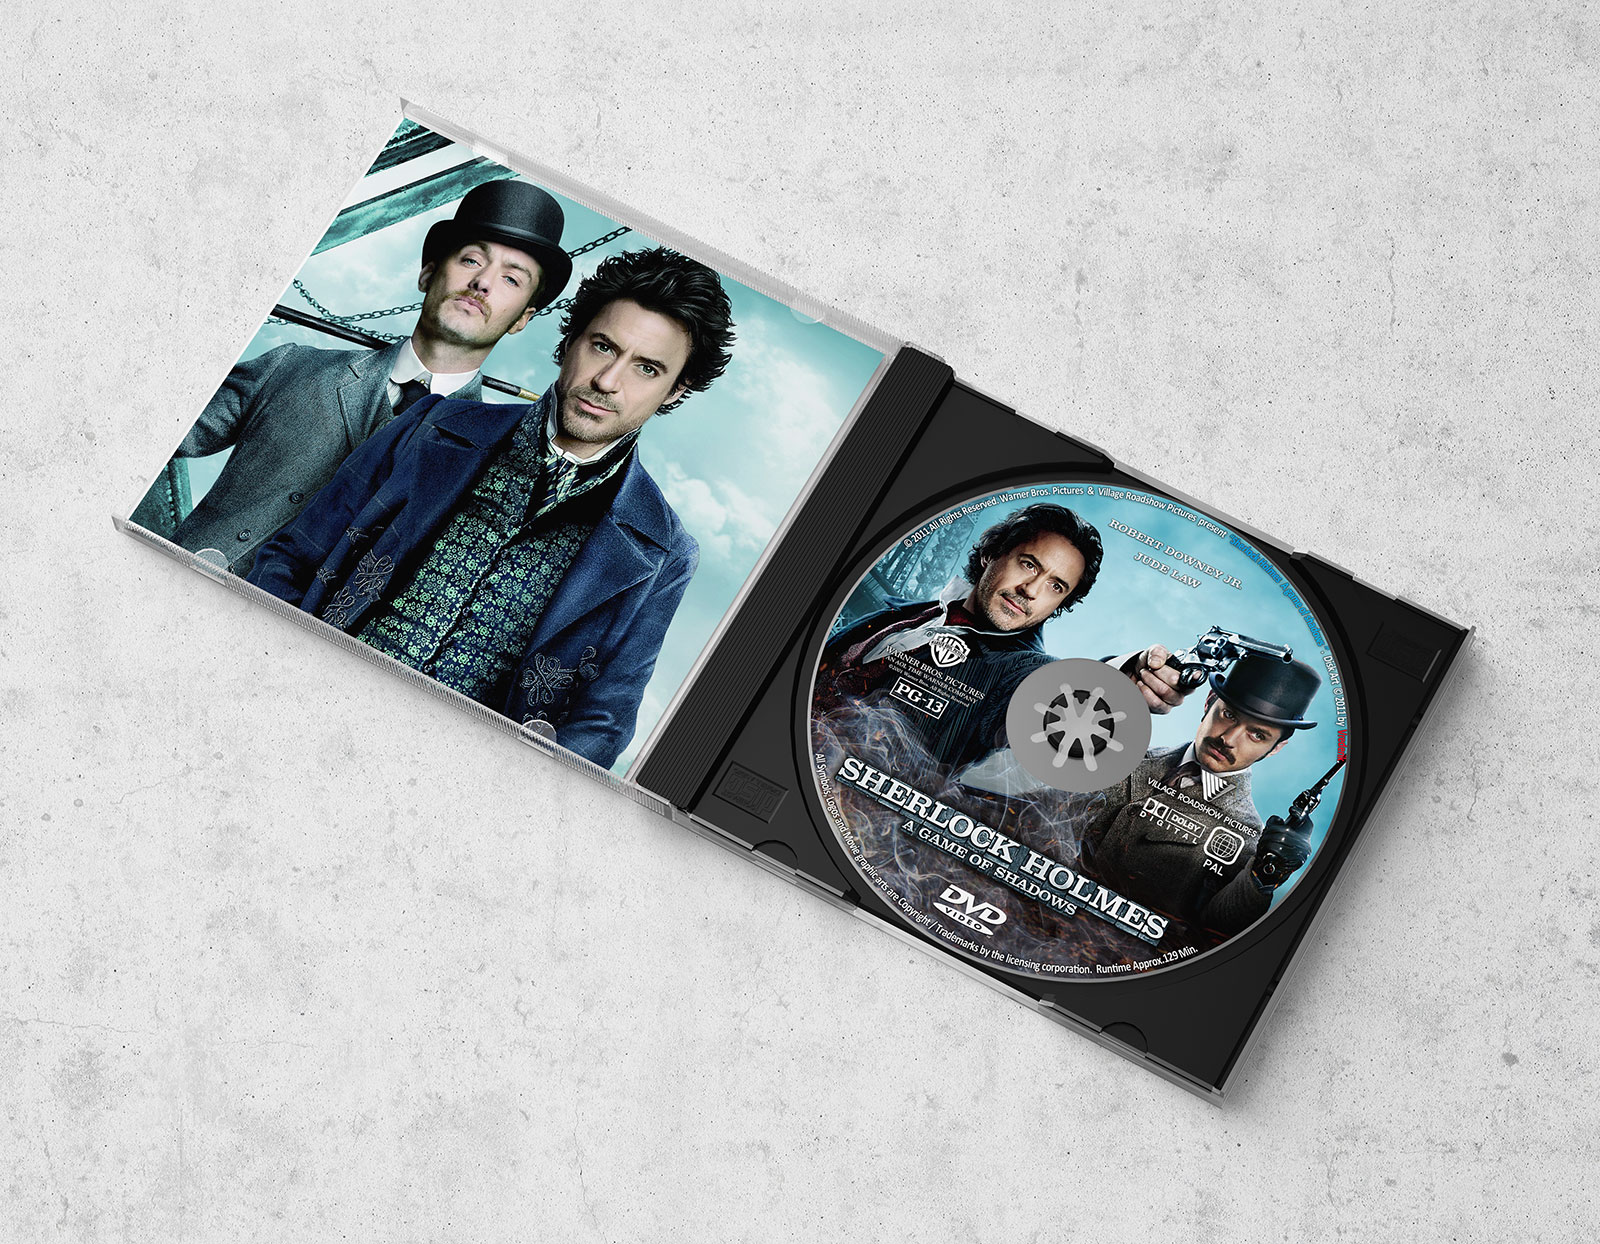 Free CD Album - DVD Disc Case Packaging Mockup PSD (5)